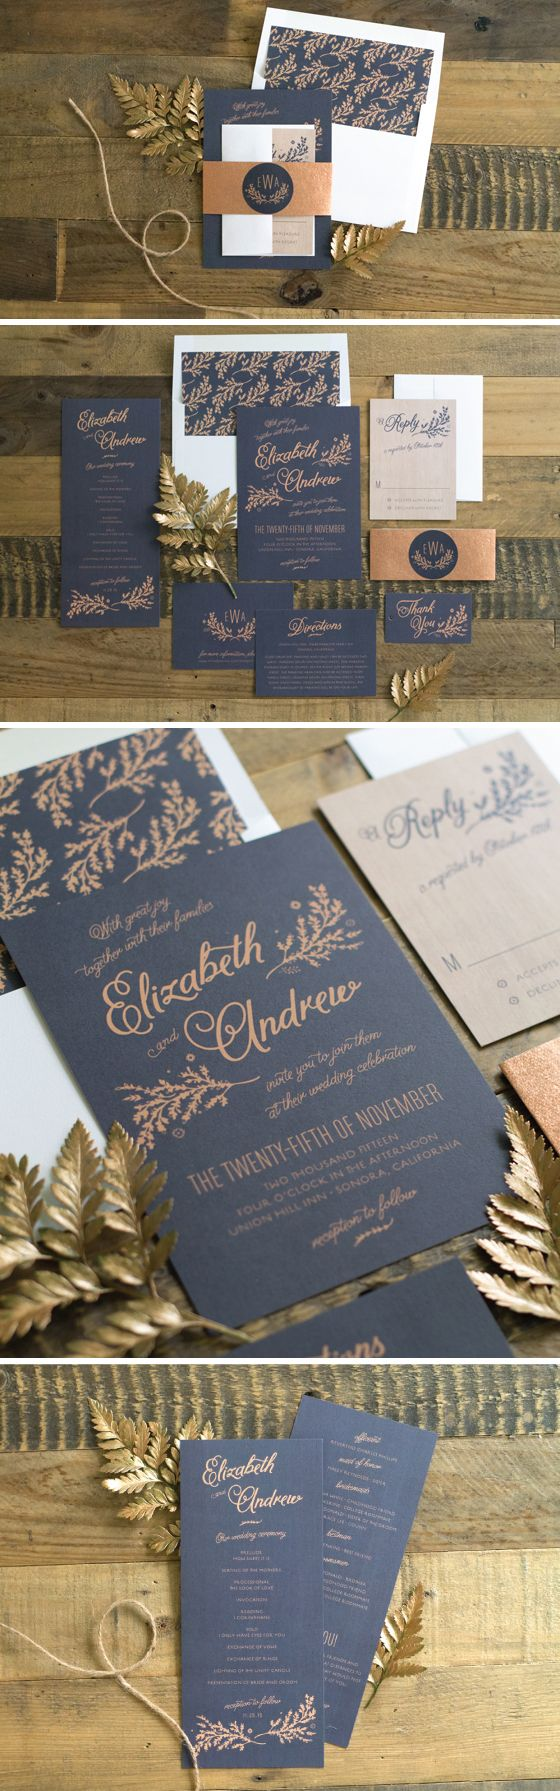 Rustic Wedding Invitations in Navy | Wedding | Pinterest | Navy ...